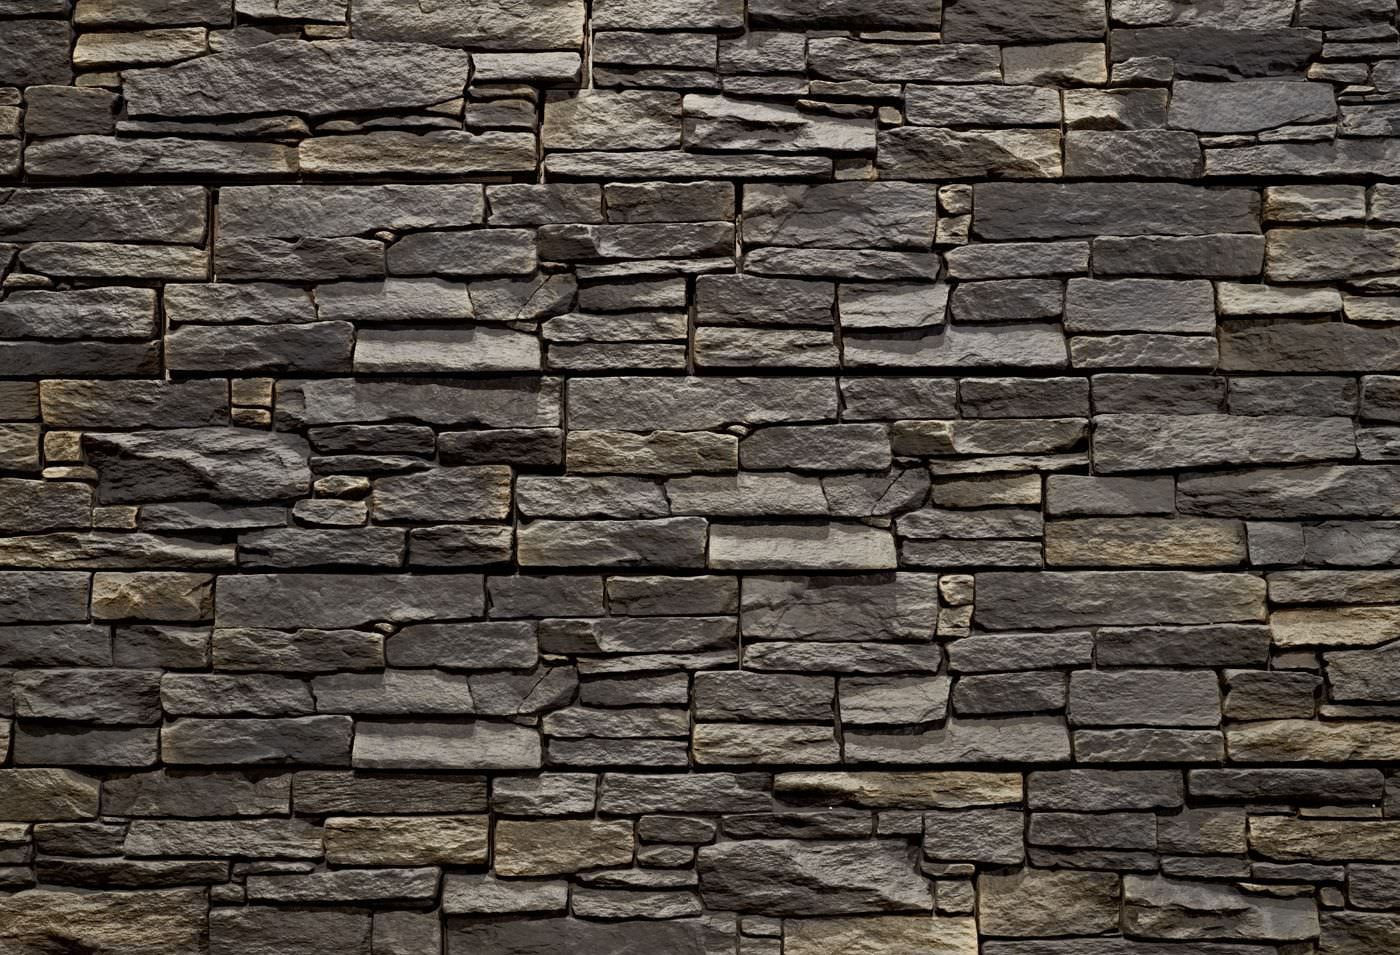 Interior Wall Cladding Panel Exterior Concrete Stone Look Materials Texture